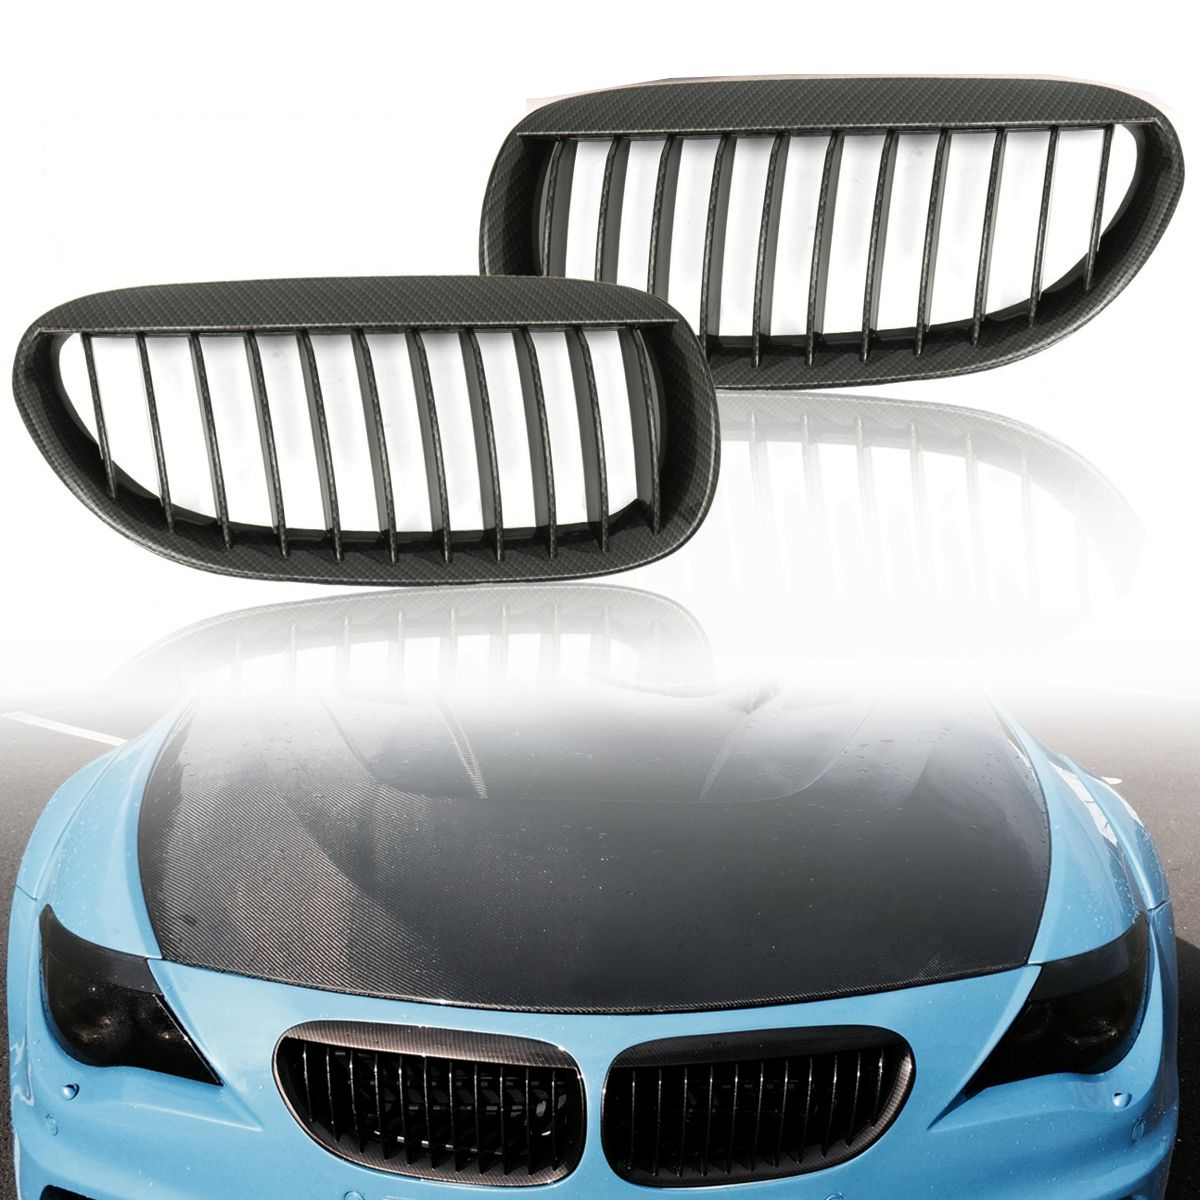 Pair Carbon Grain Kidney Grilles Front Right Left For BMW E63 E64 6 Series 2 Door Grille 2003 2004 2005 2006 2007 2008 2009 2010 pair car front headlamp clear lens headlight plastic shell clear cover for bmw e90 e91 2004 2005 2006 2007